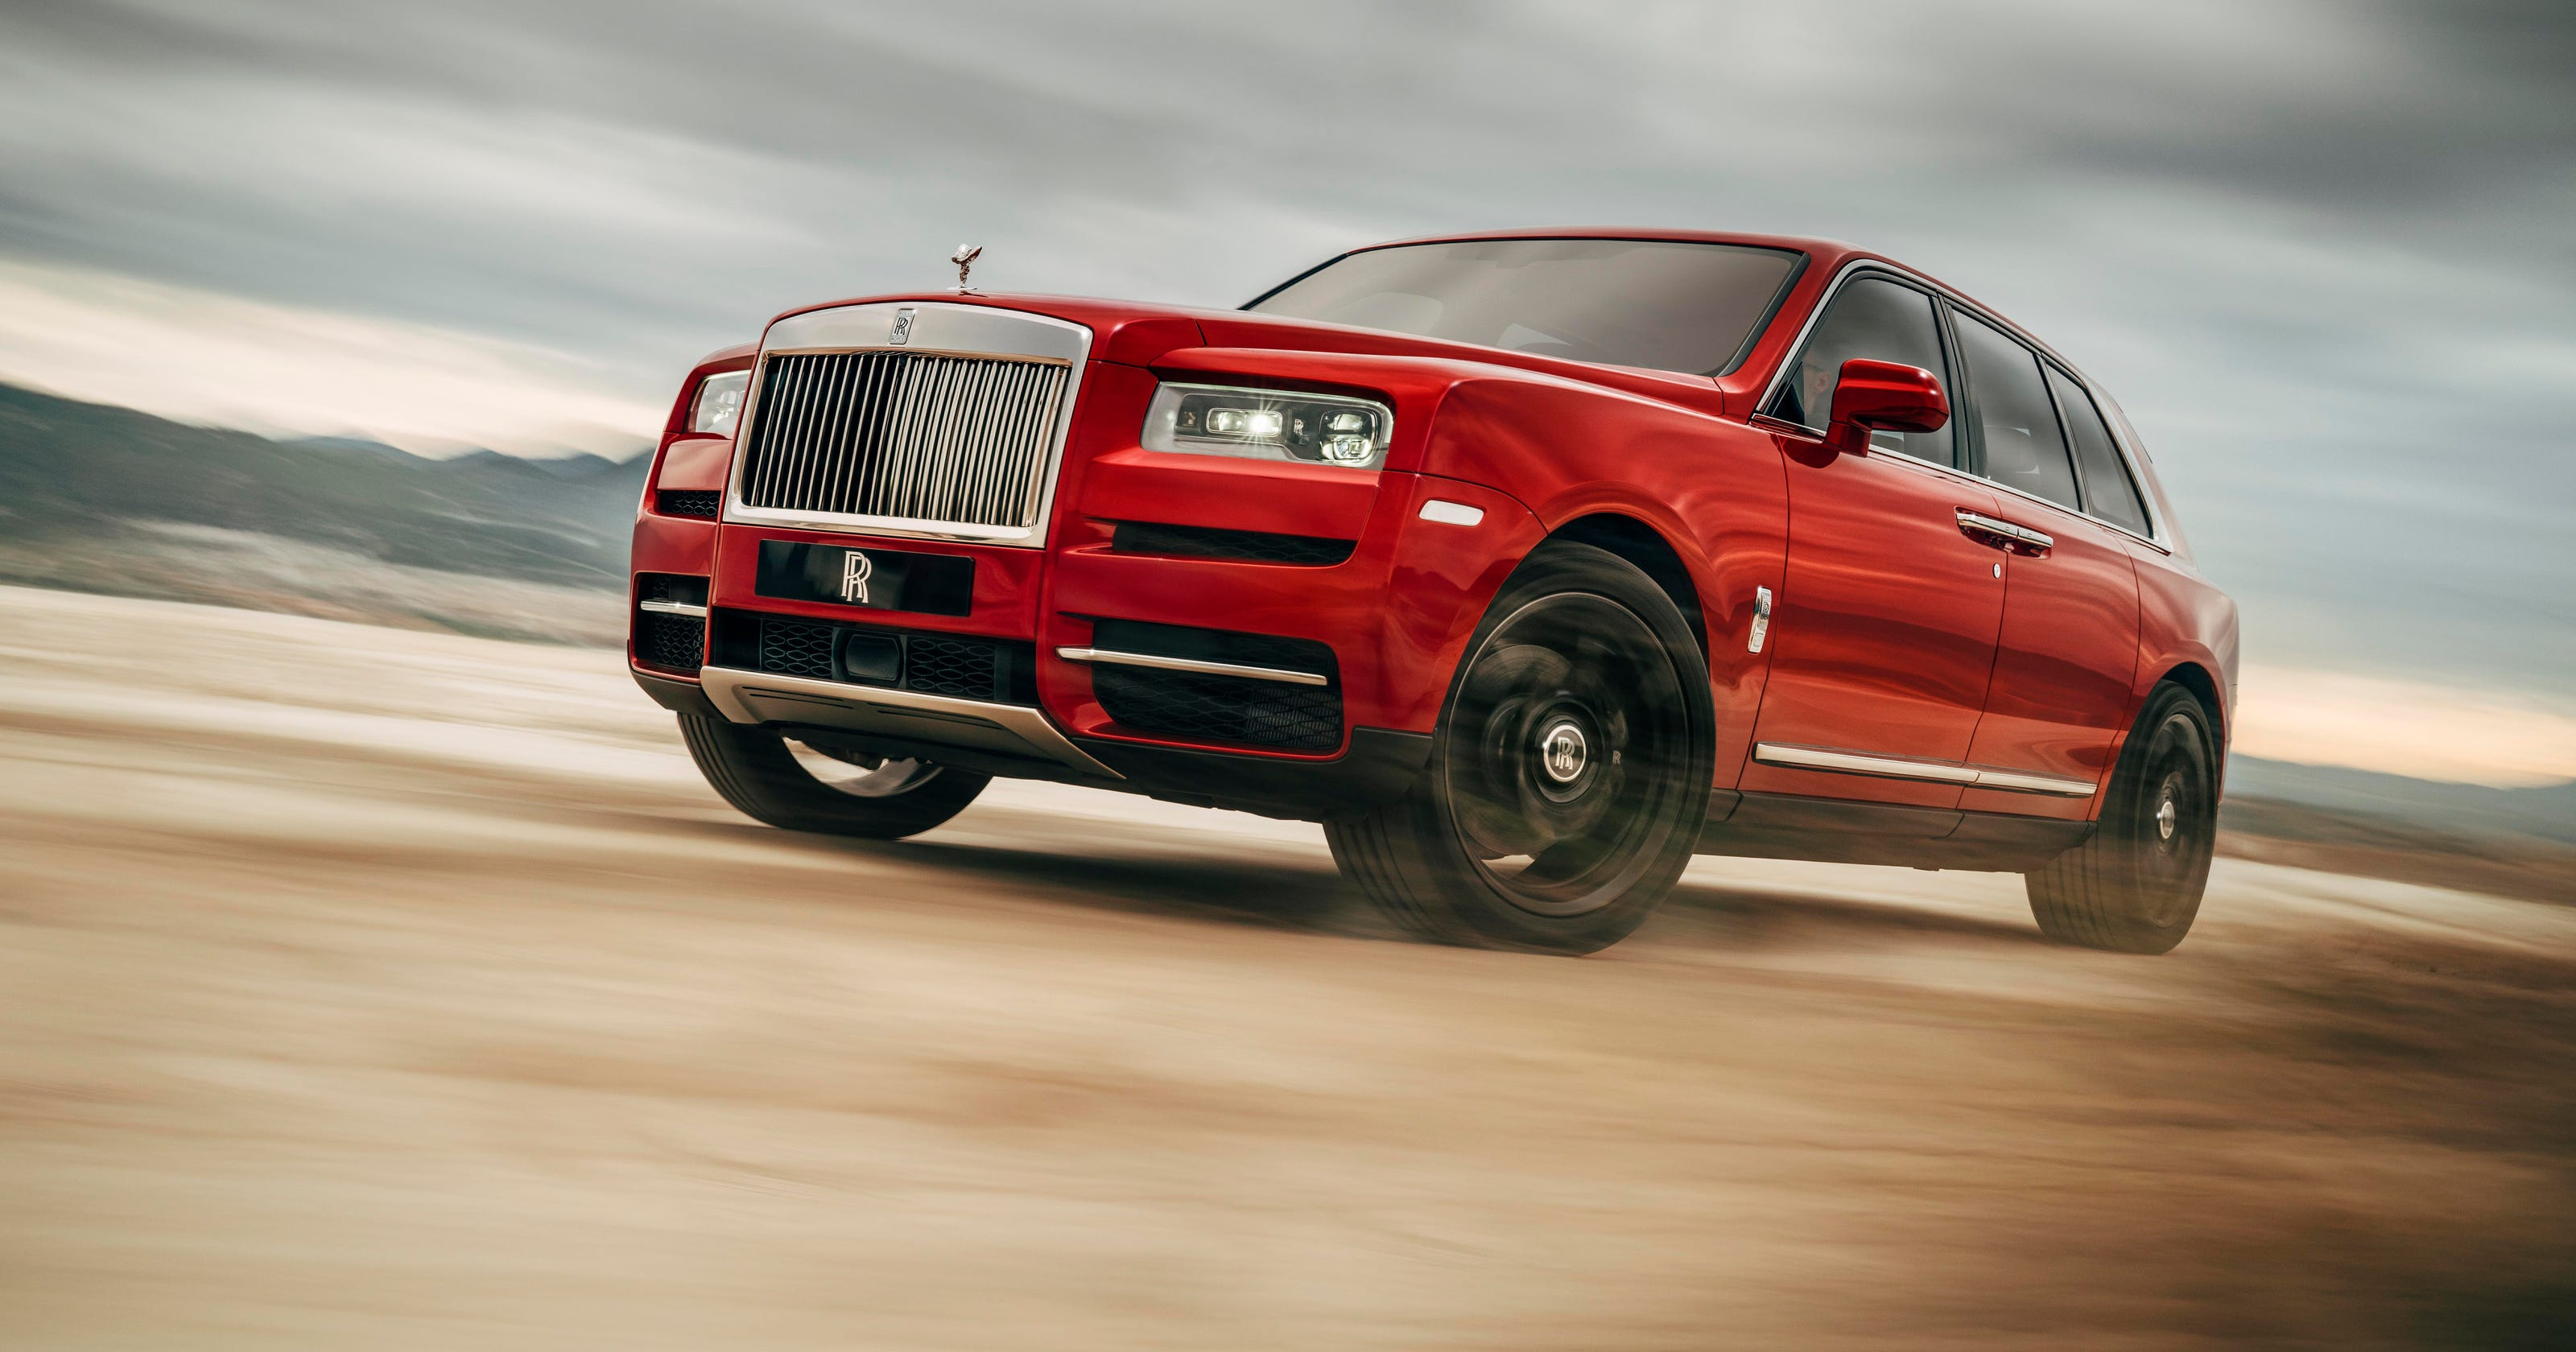 Rolls Royce Reveals Cullinan Suv At A Price Of 325000